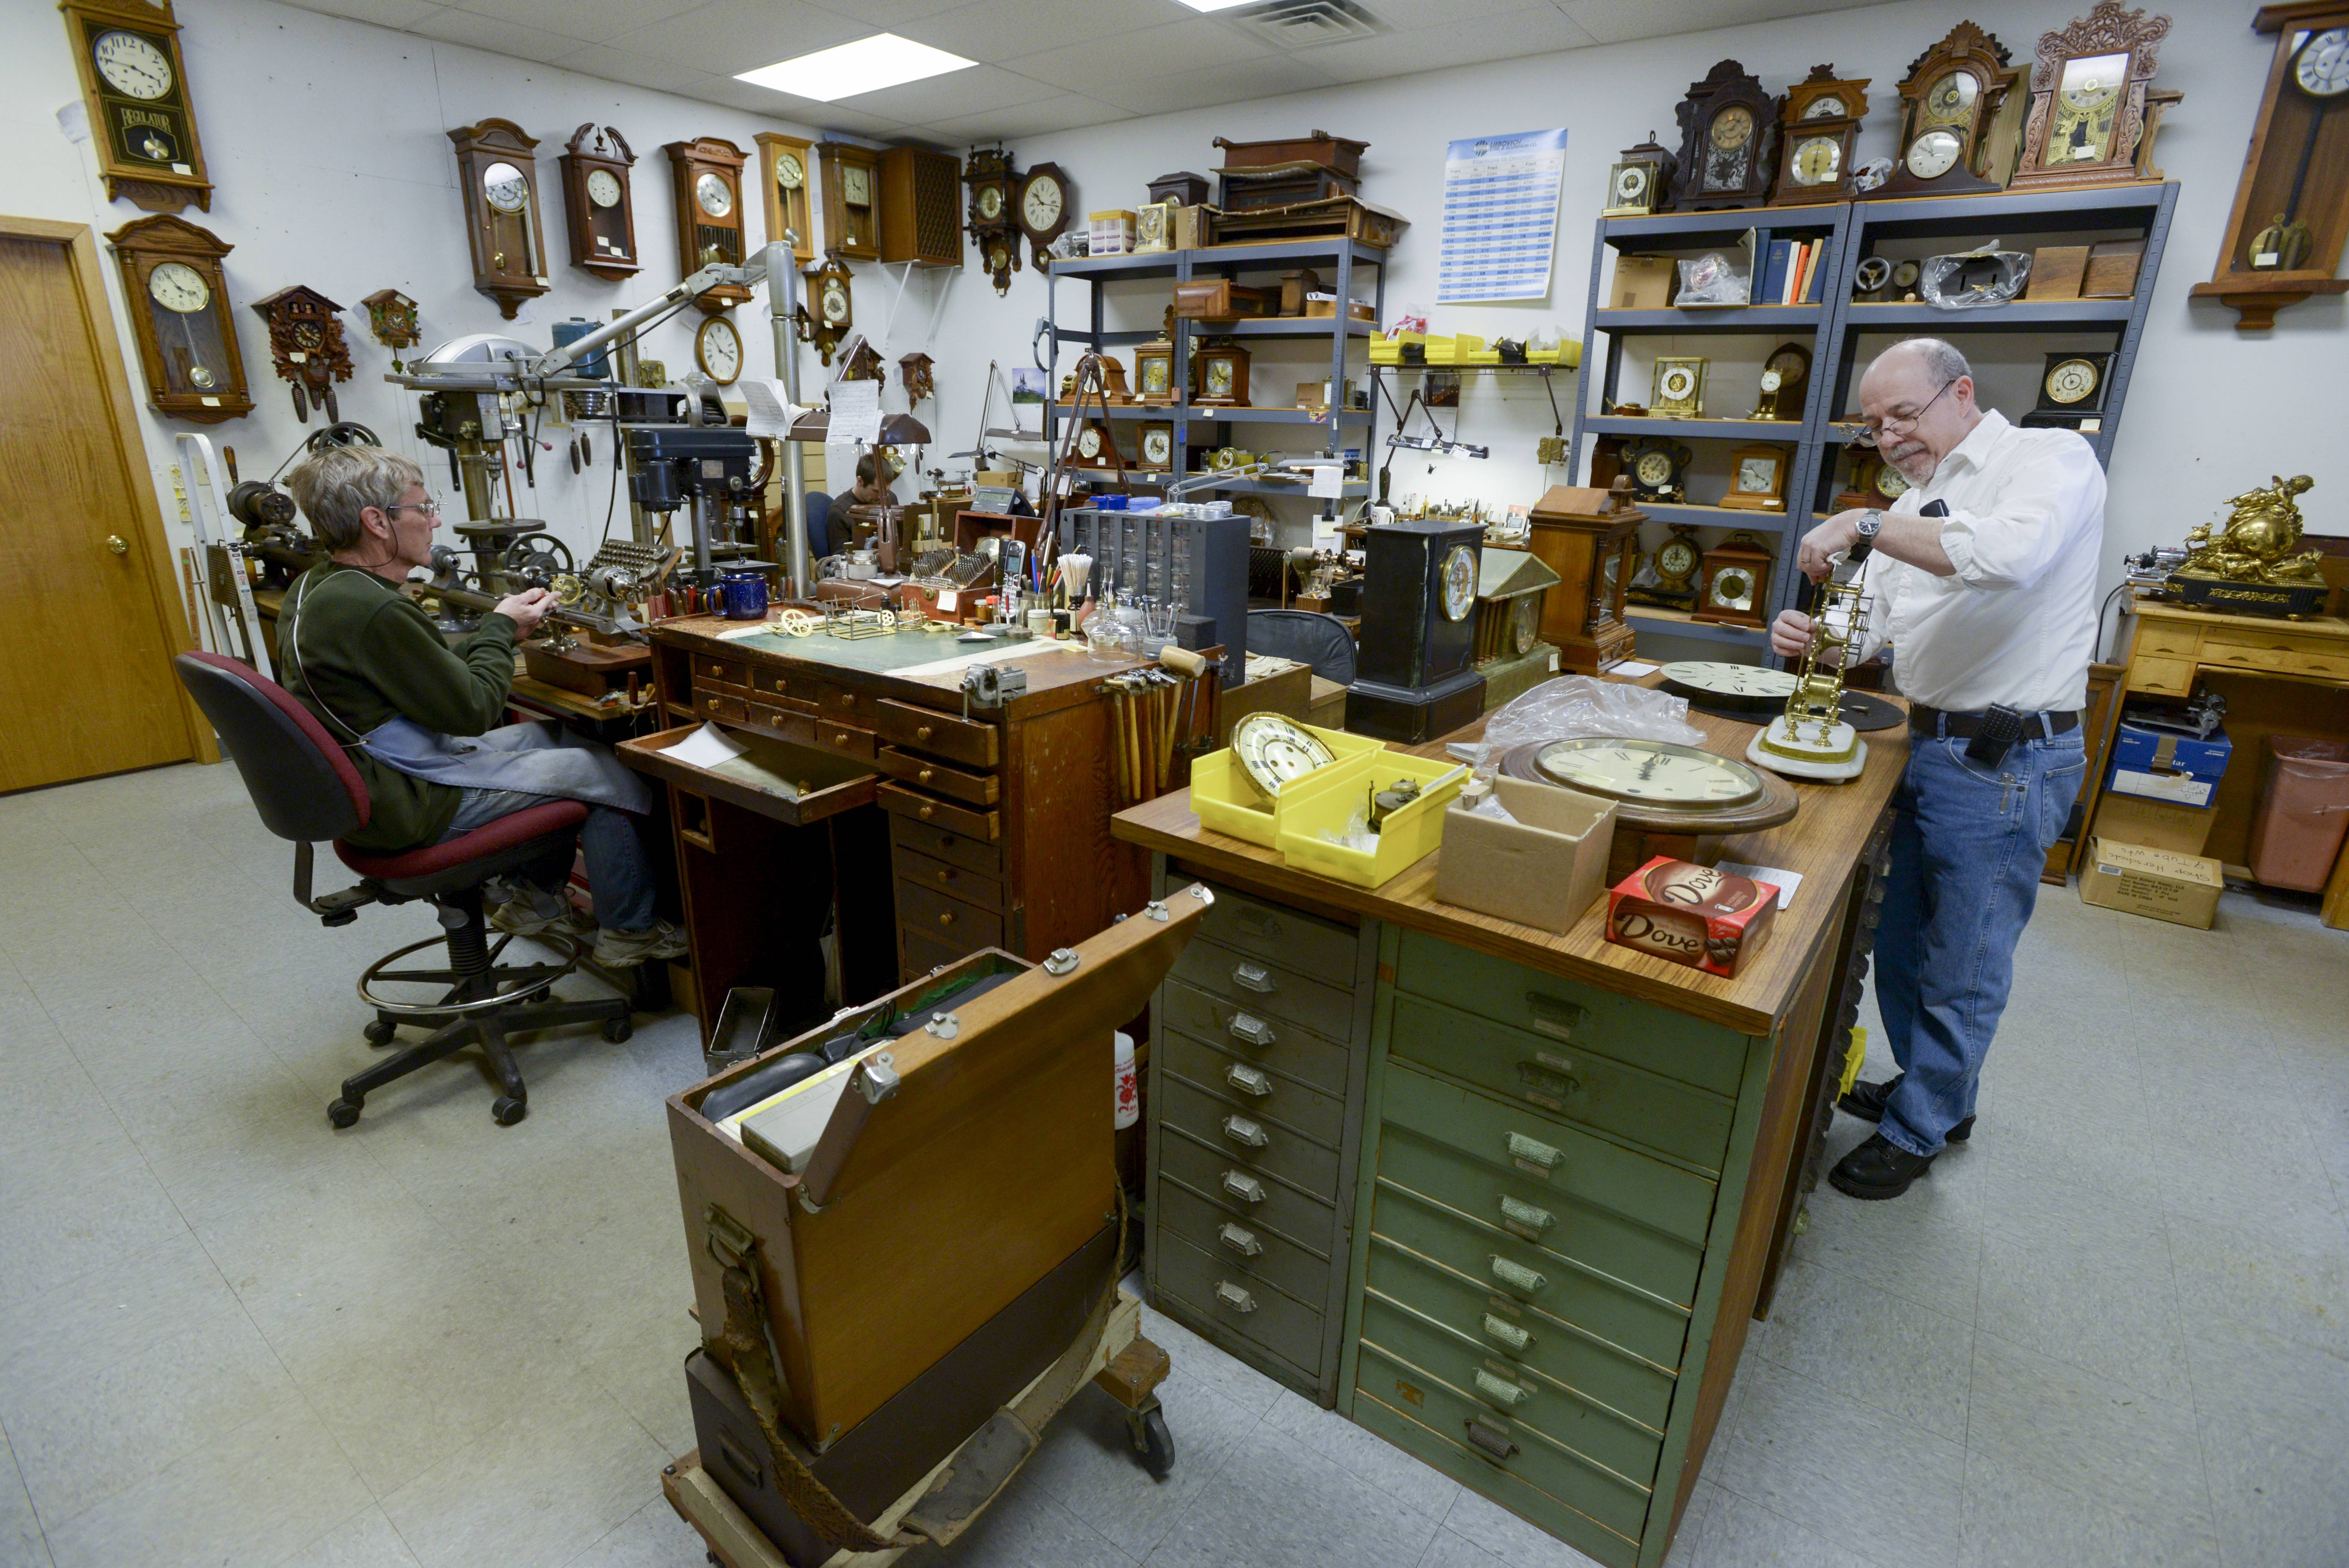 Jim Lachapelle, right, and his business parker Roland Iverson work on repairing clocks in their South Elgin store.